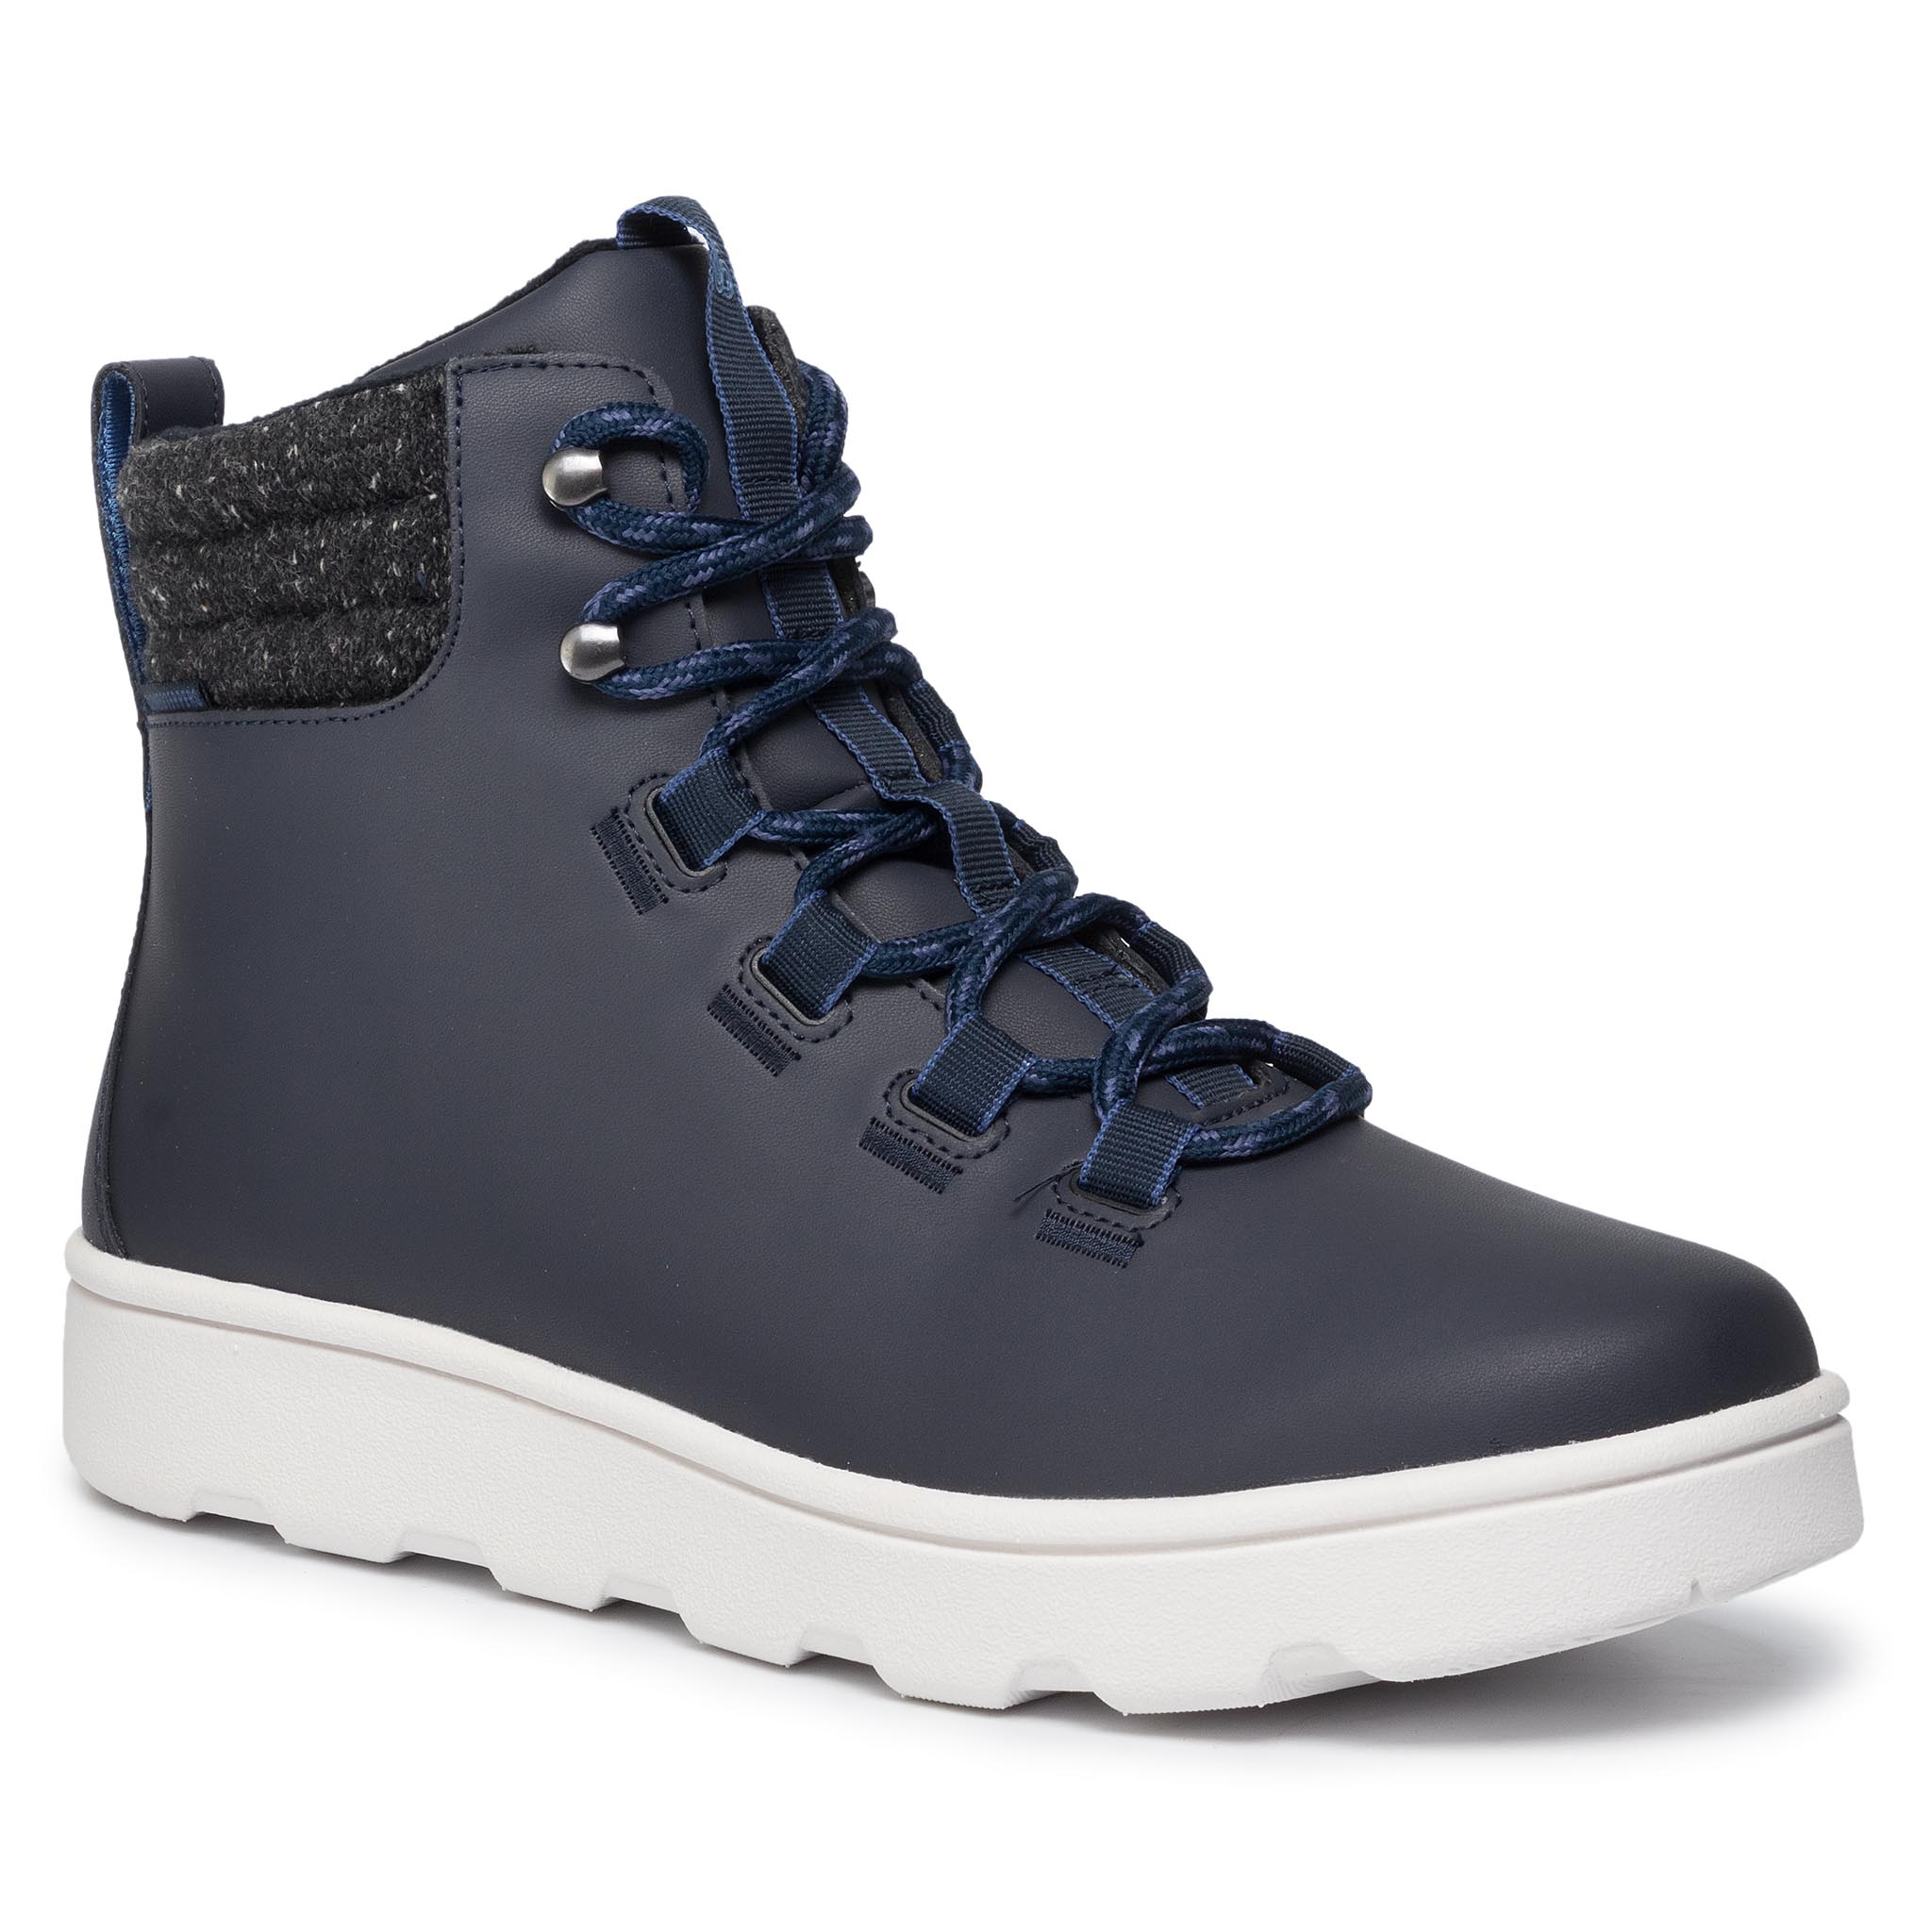 Ghete Clarks - Step Explor Hi 261459807 Navy imagine